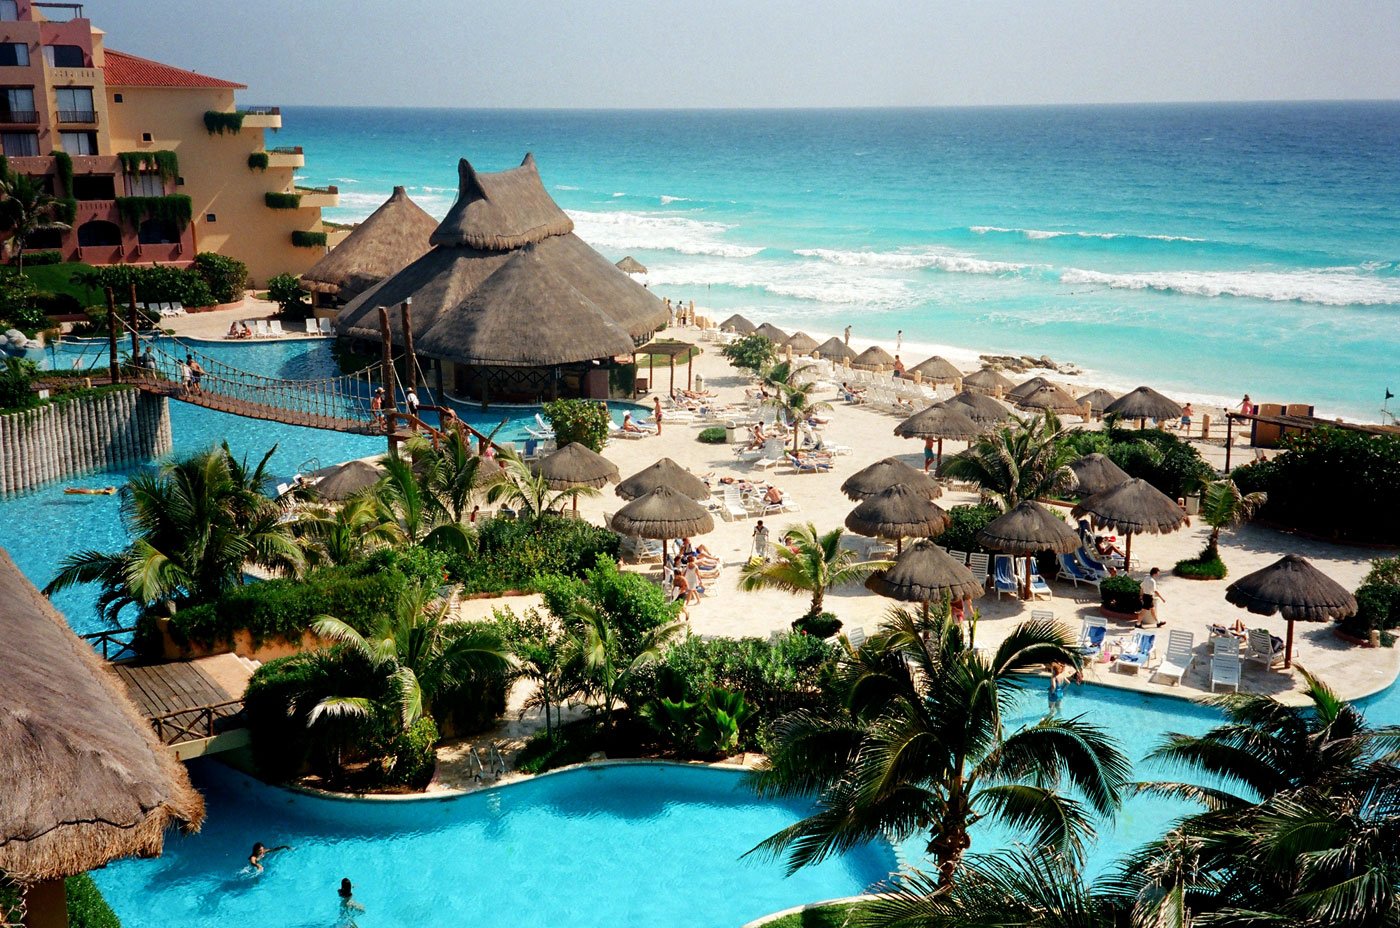 10 Best Vacation Spots in Mexico – Touropia Travel Experts